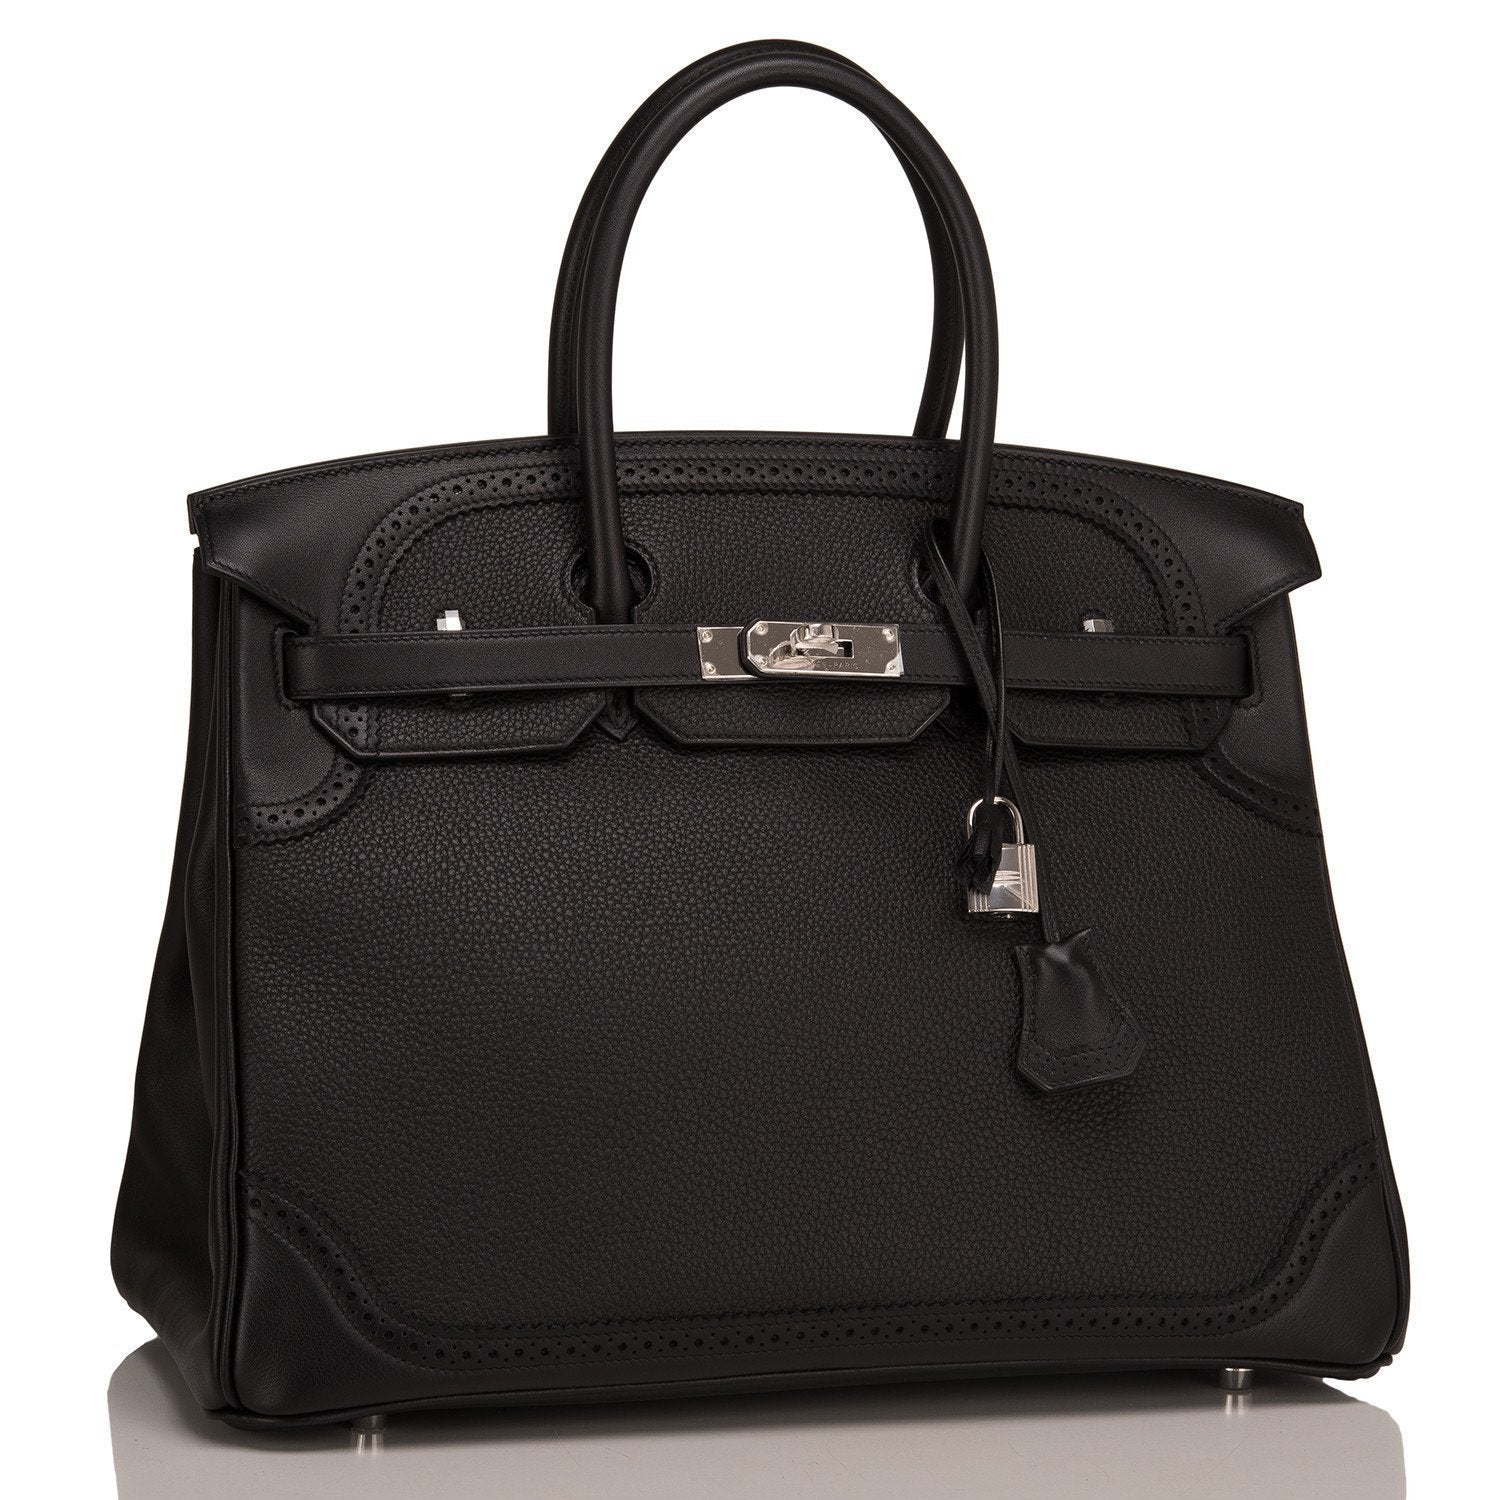 Hermes Black Togo Swift Ghillies Birkin 35Cm Palladium Hardware Handbags